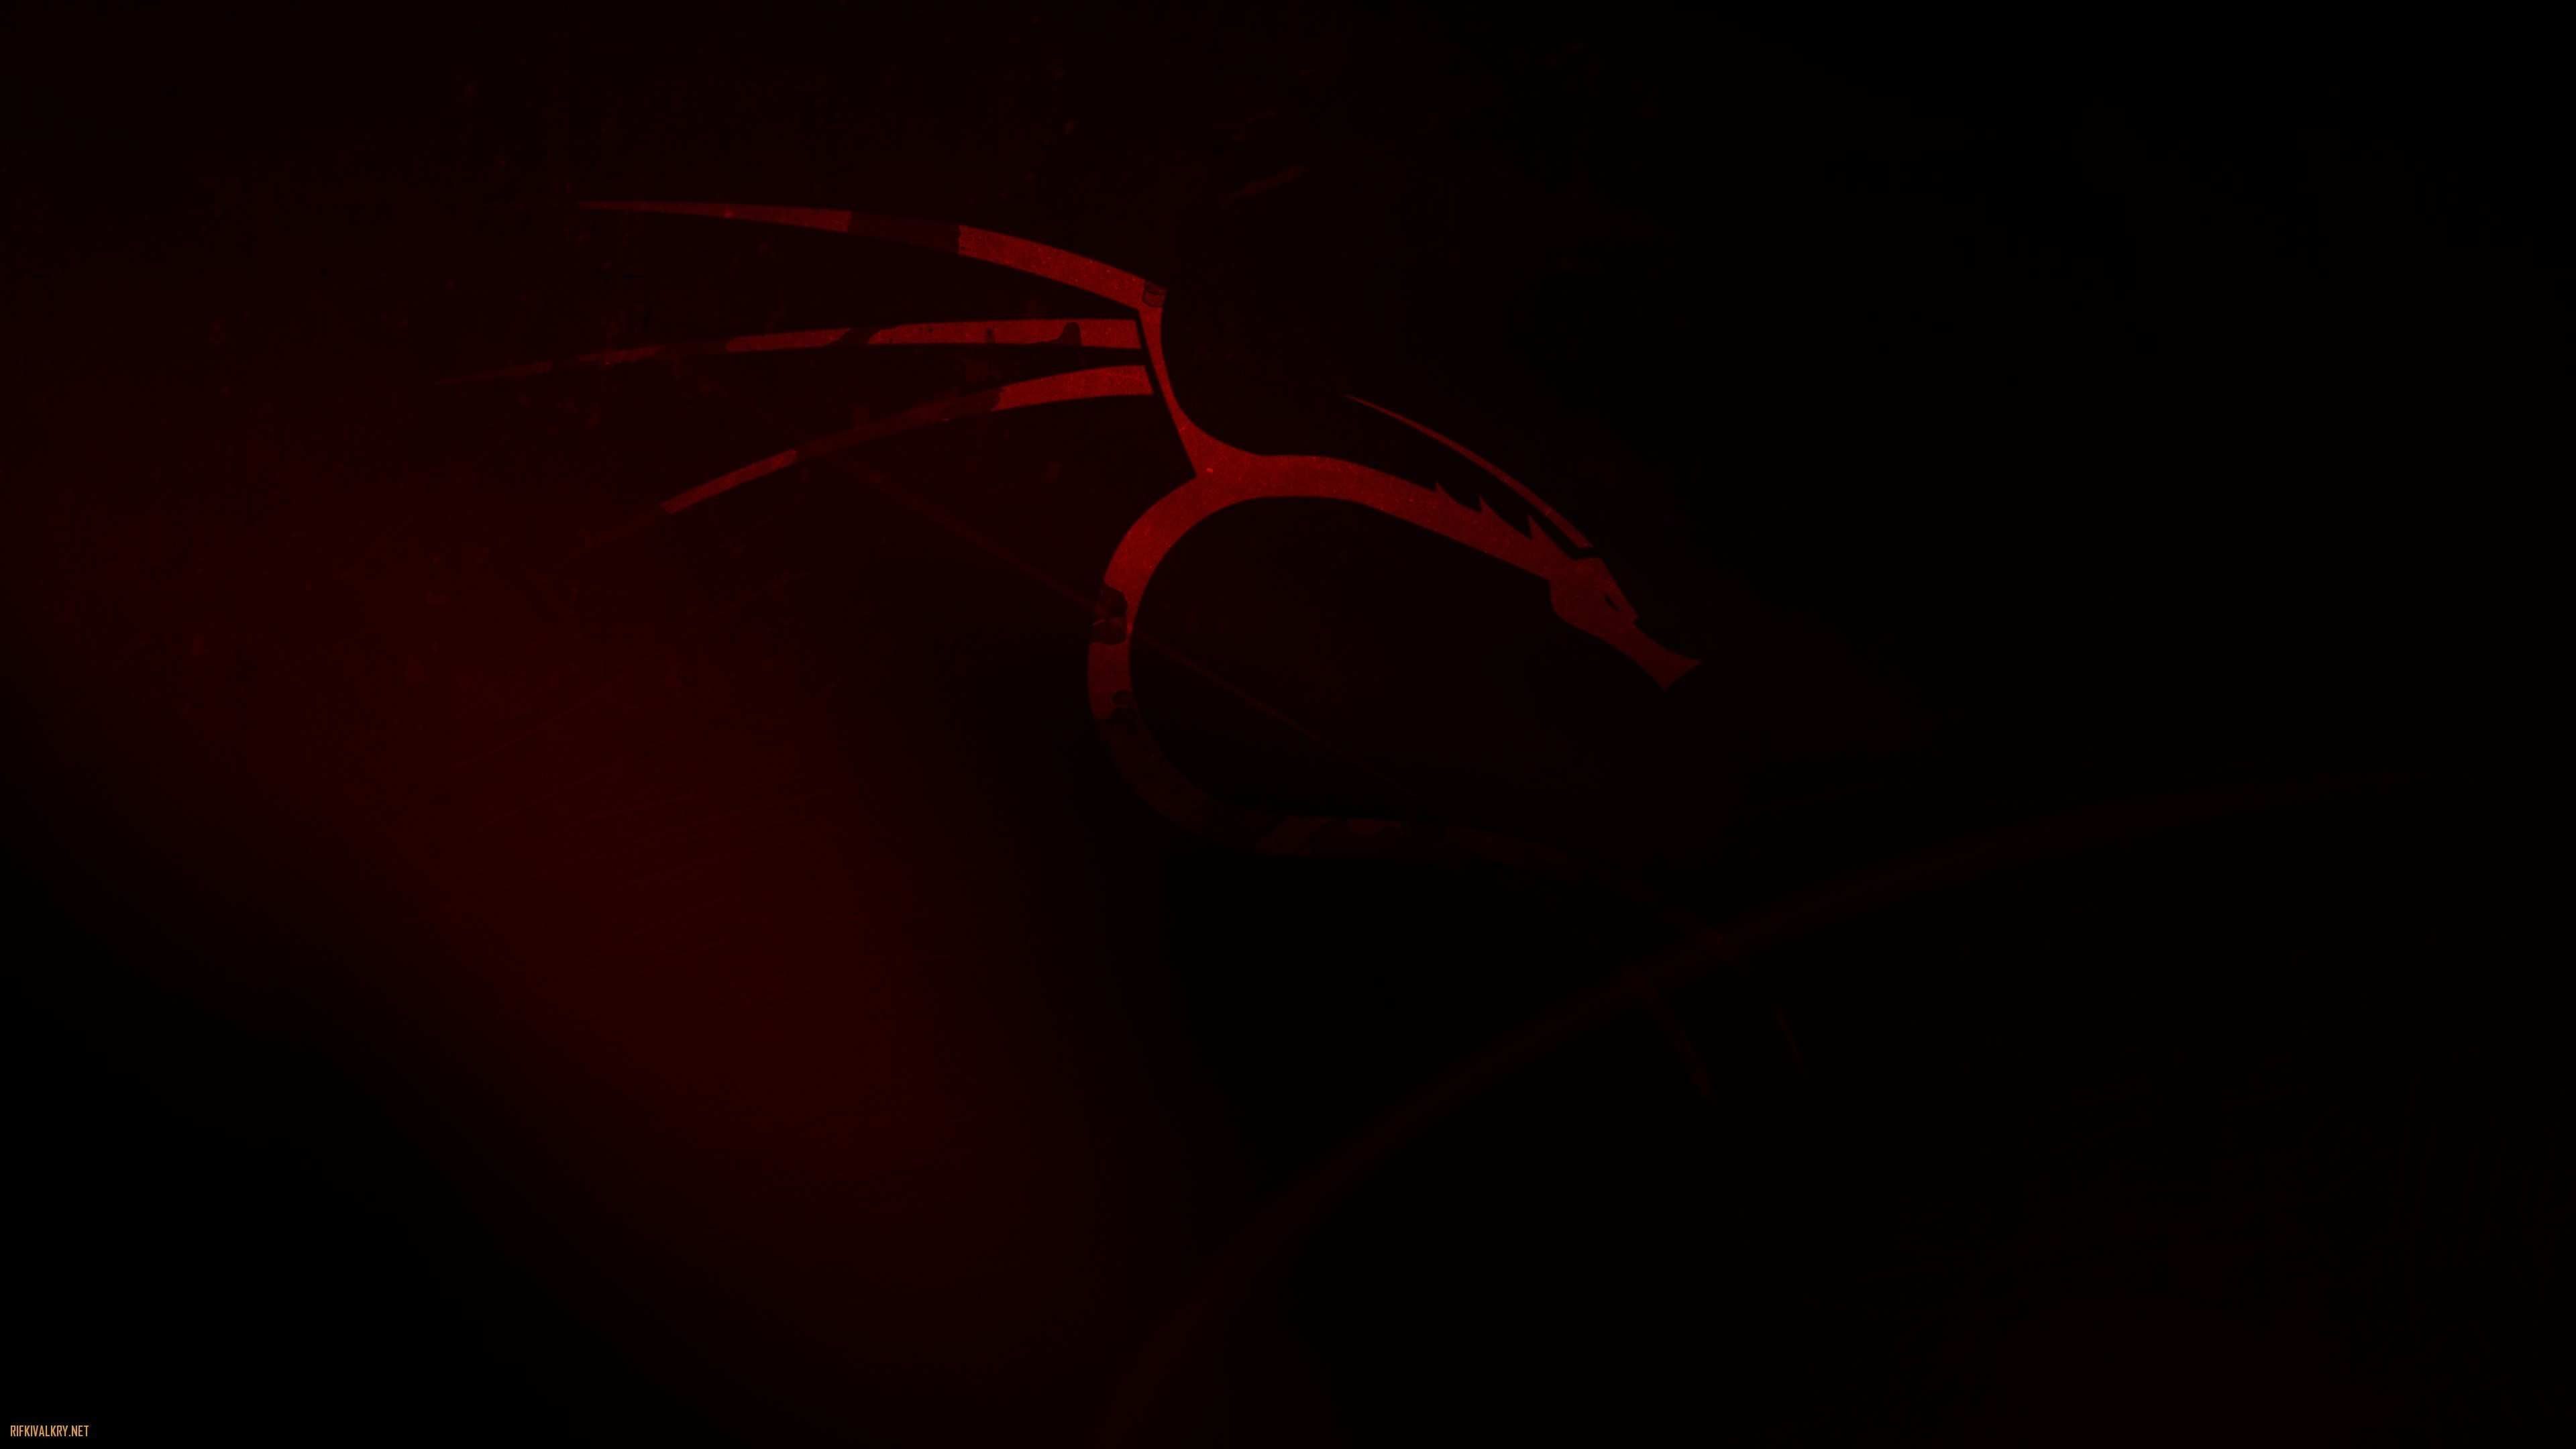 Download Kali Linux Matrix Wallpaper Hi Tech Wallpapers Images Photos And Background For Desktop Windows 1 In 2021 Hi Tech Wallpaper Wallpaper Backgrounds Wallpaper